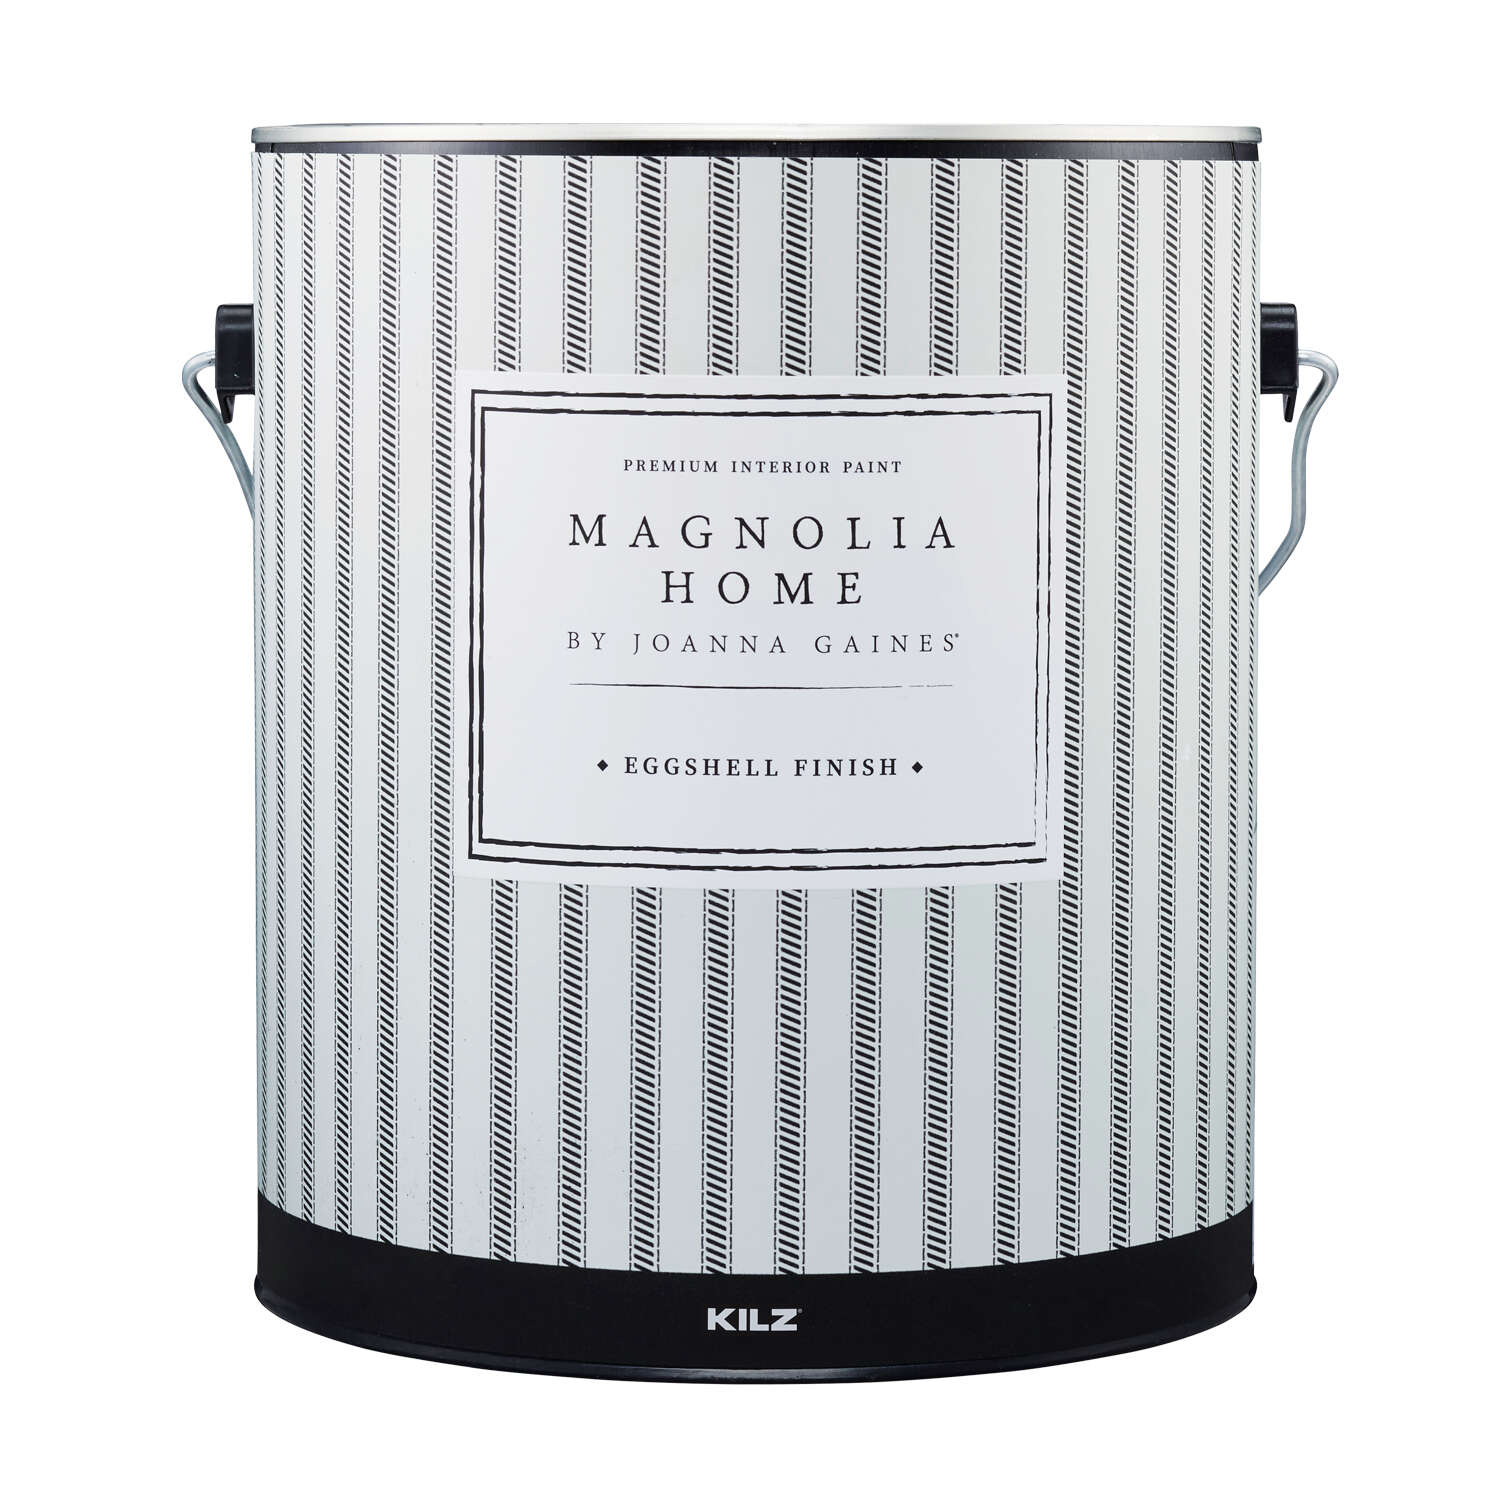 Magnolia Home by Joanna Gaines  Eggshell  Tint Base  Base 2  Paint and Primer  Interior  1 gal.